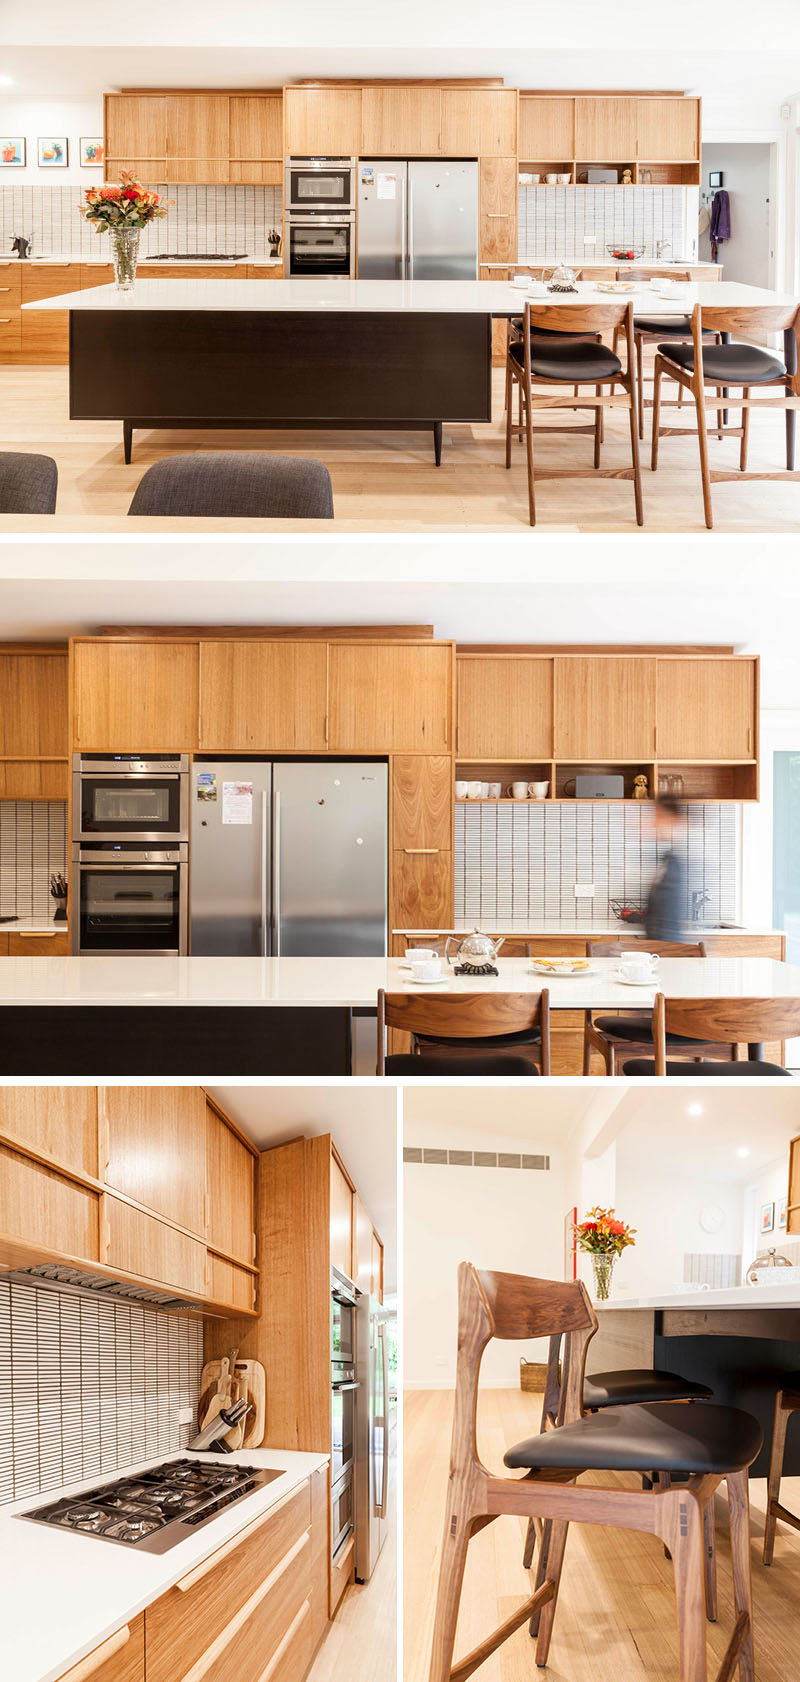 This bespoke, mid-century modern styled kitchen, that features an island with mid-century style legs, custom cabinetry with handmade drawer/cabinet pulls, and a tiled backsplash which adds texture to the room. #WoodKitchen #MicCenturyModernKitchen